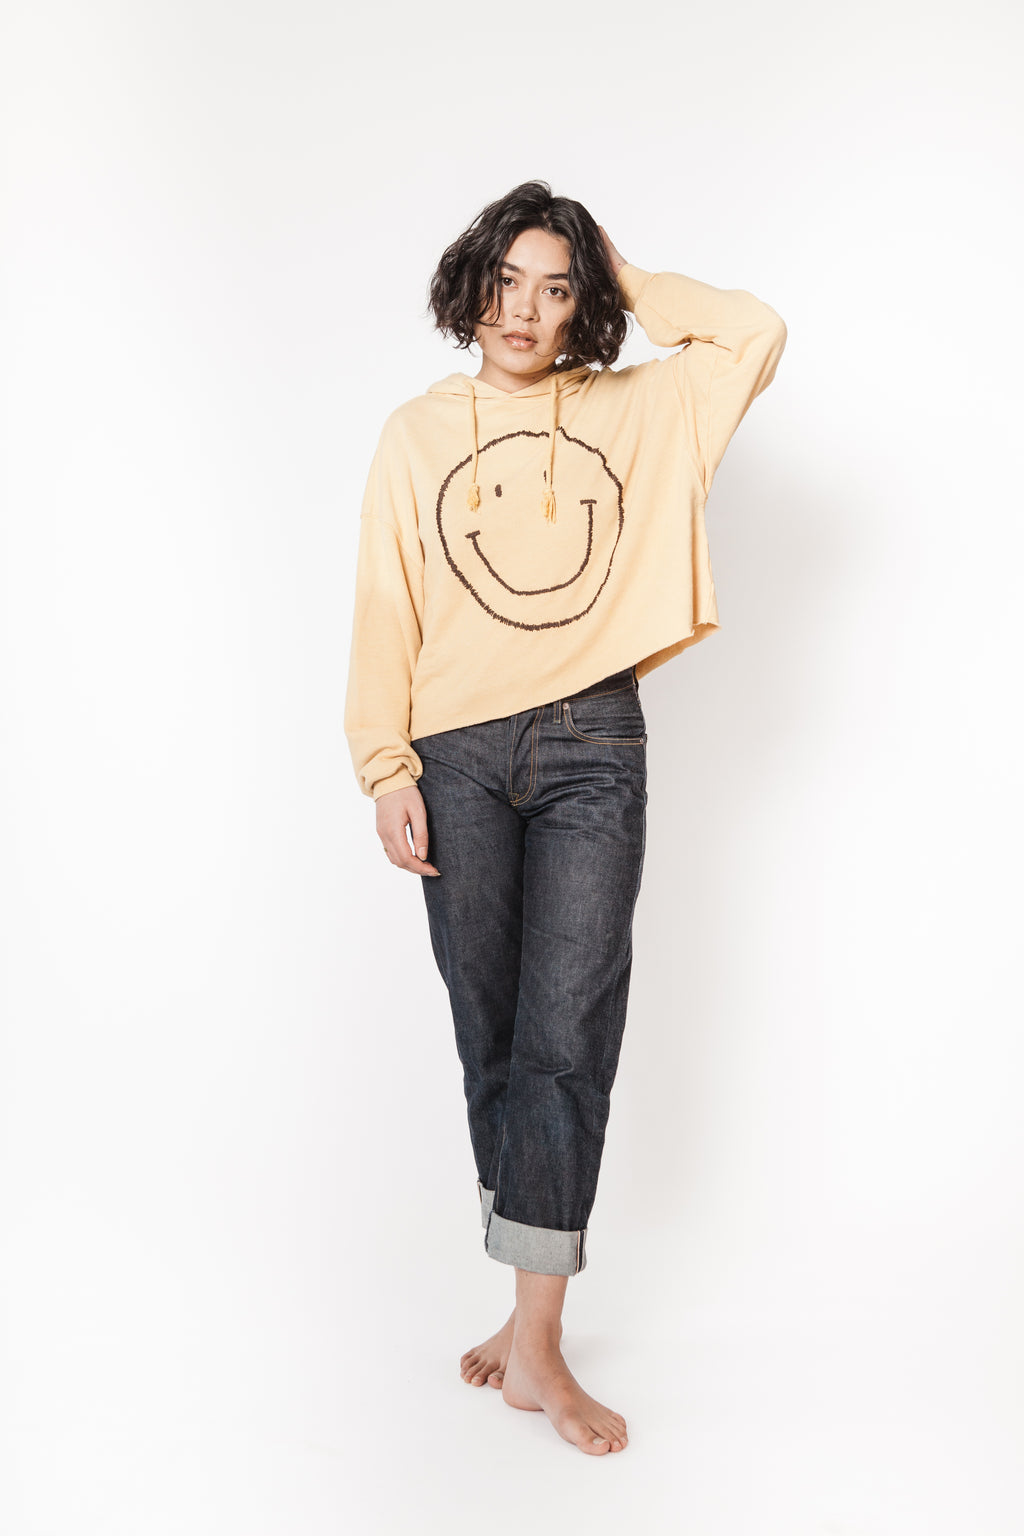 I Stole My Boyfriend's Sweatshirt smiley face cropped hoodie